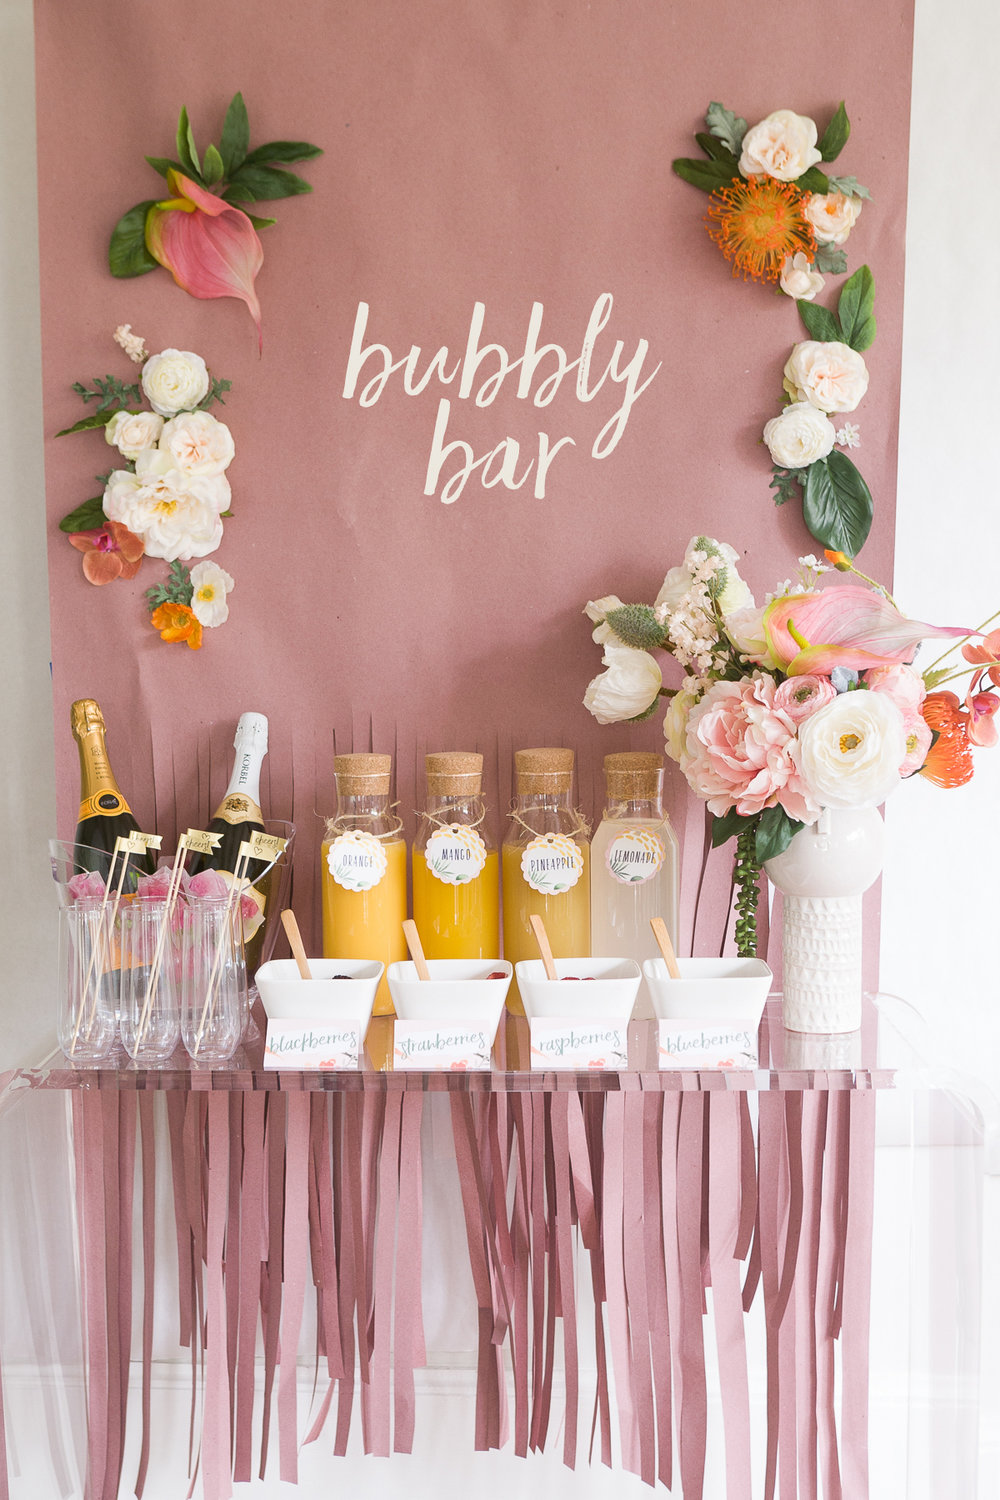 Bridal Shower Brunch Ideas - Mimosa Bar!